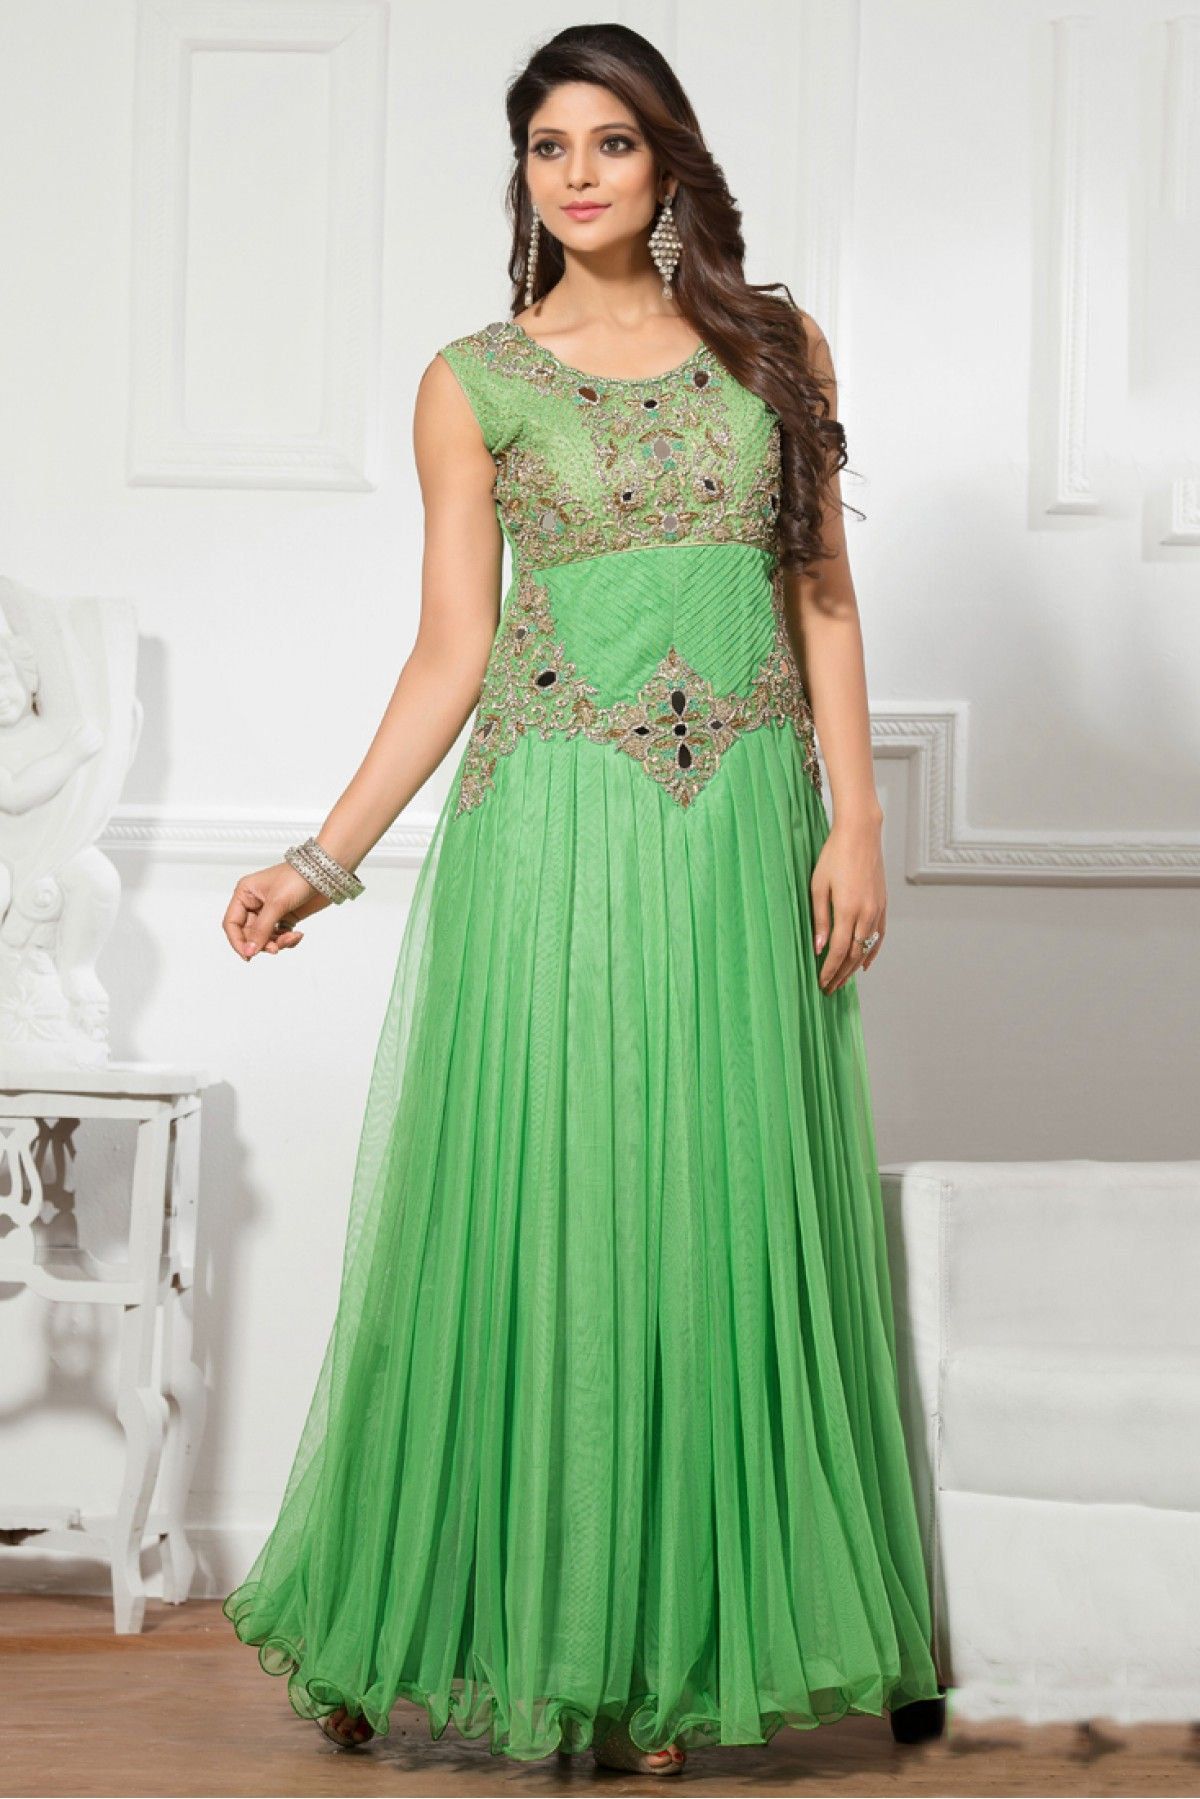 6ba5c55c9 Light Green Colour Net Fabric Designer Semi Stitched Gown Comes With  Matching Dupatta. This Gown Is Crafted With Resham Work,Embroidery,Cut  Dana,Diamond ...